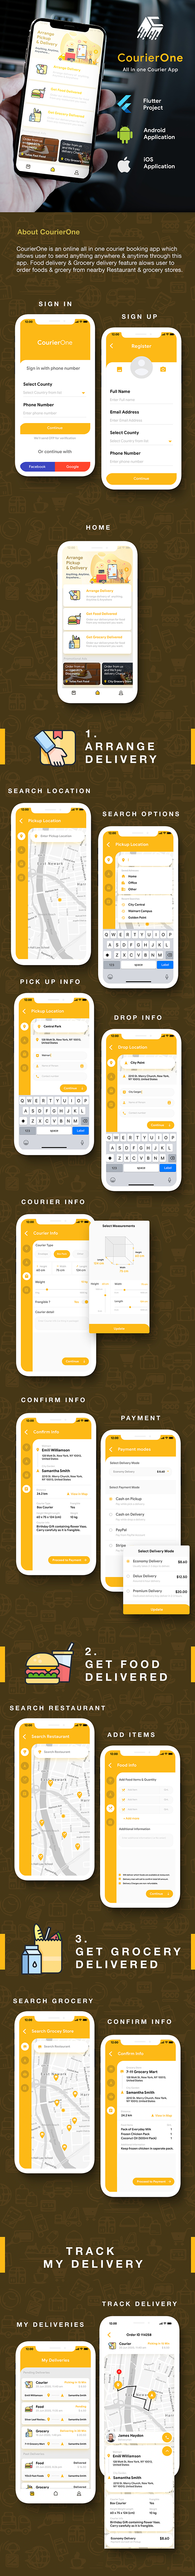 Modern Courier Delivery Flutter App Template| User App + Delivery App | Courierone - 3